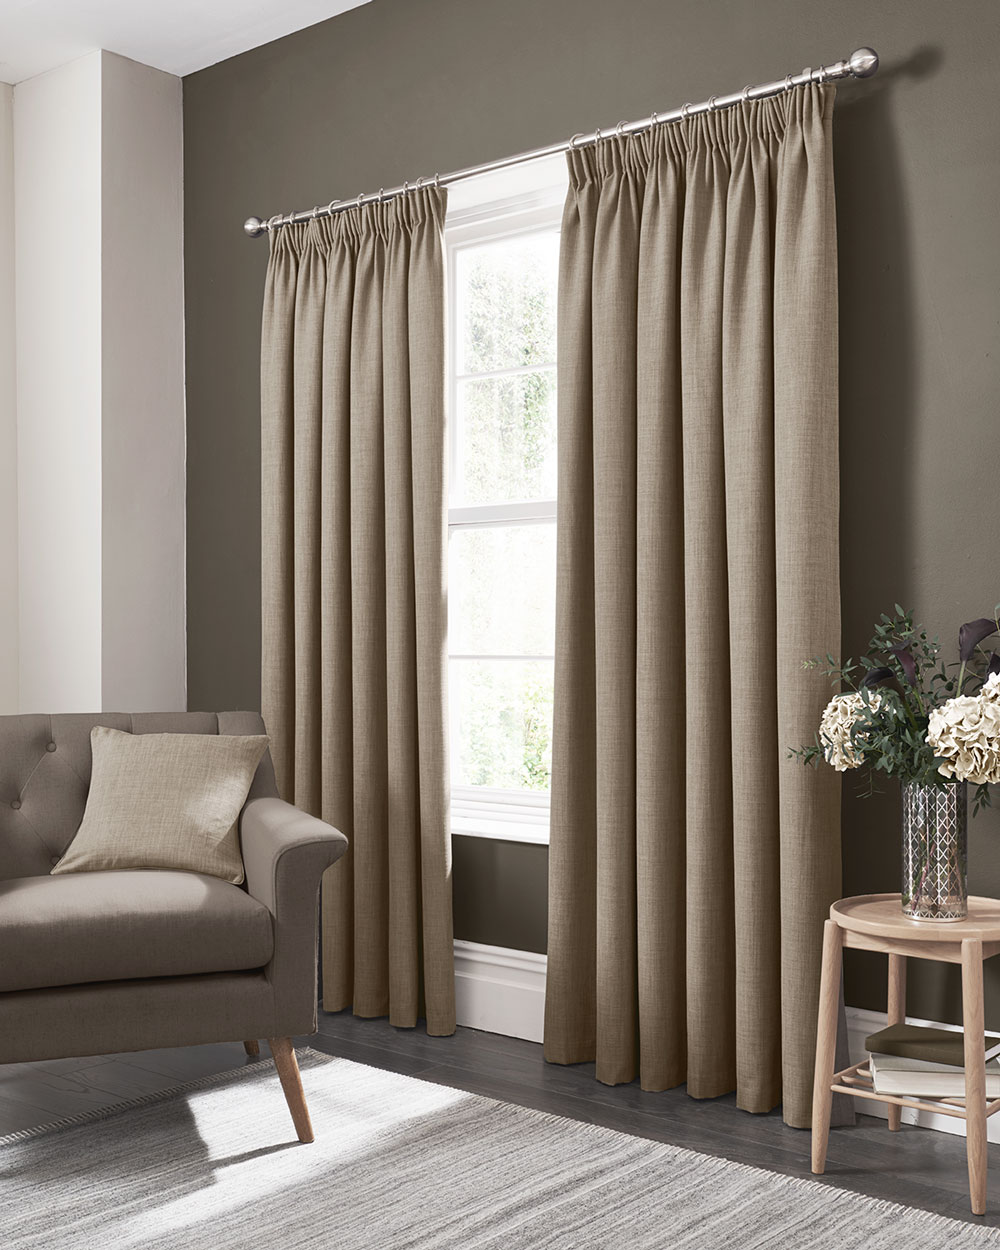 Studio G Elba Pencil Pleat Curtains  Linen Ready Made Curtains - Product code: M1105/03/66X5